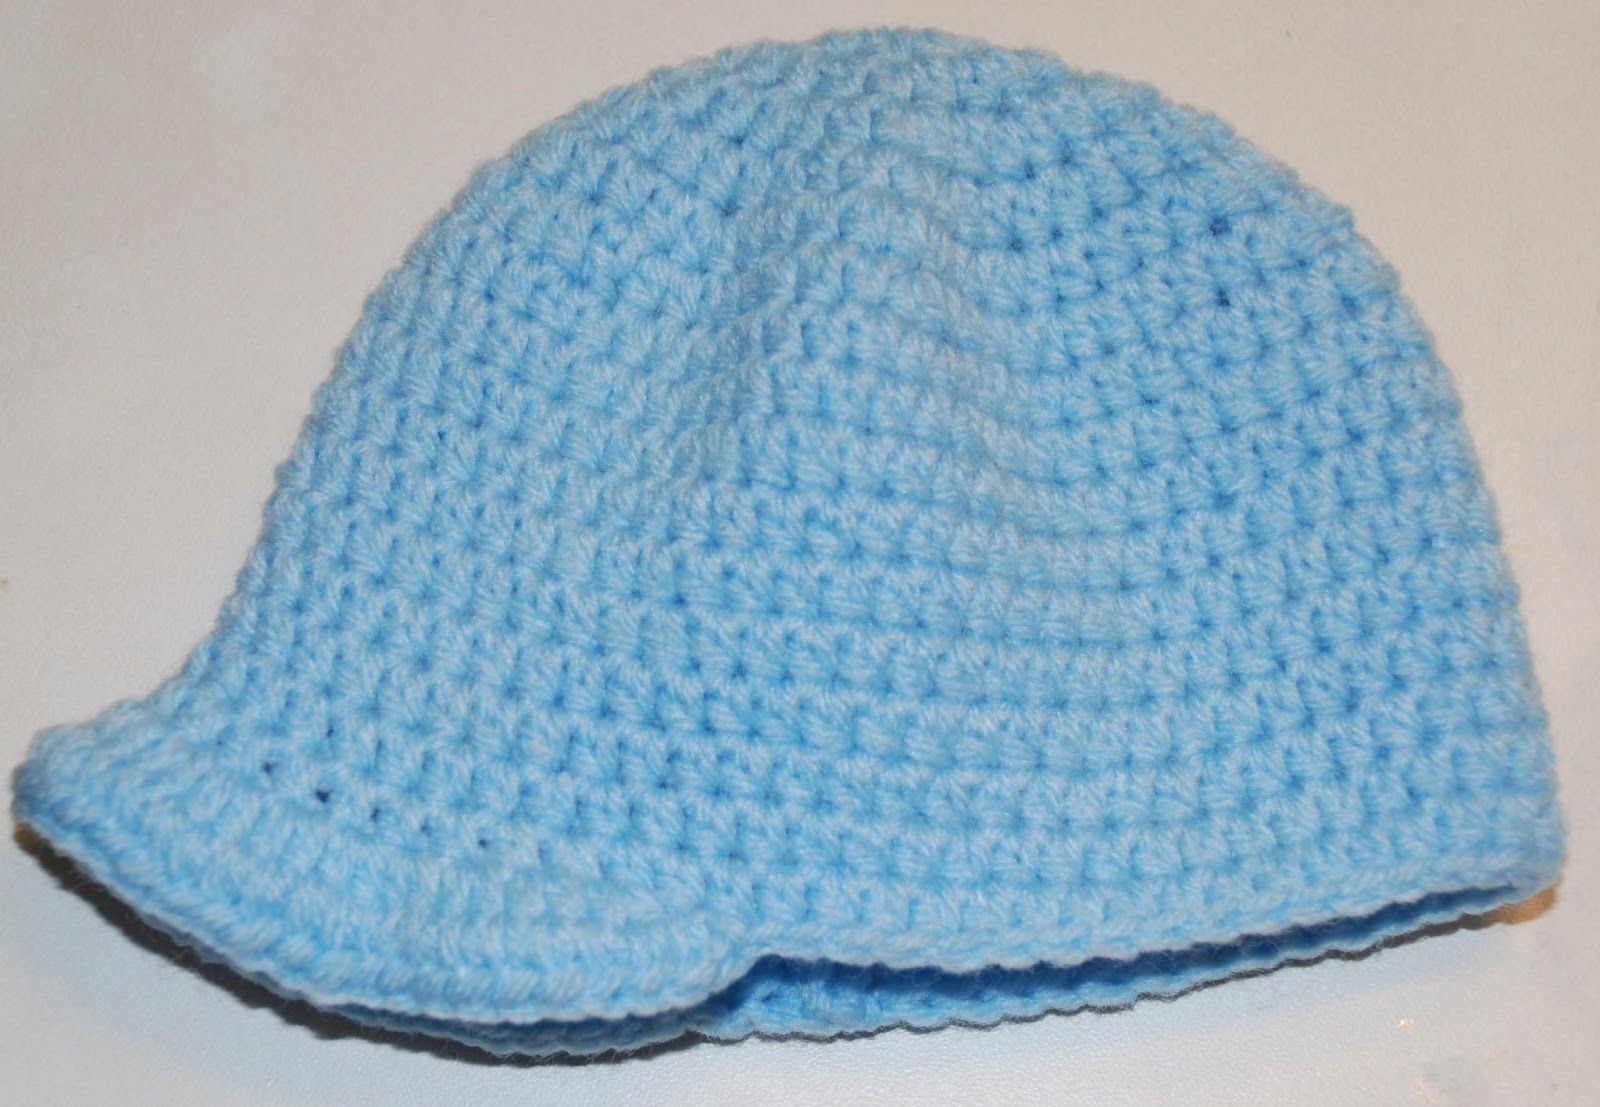 Amys crochet creative creations crochet newborn baseball cap amys crochet creative creations crochet newborn baseball cap bankloansurffo Gallery